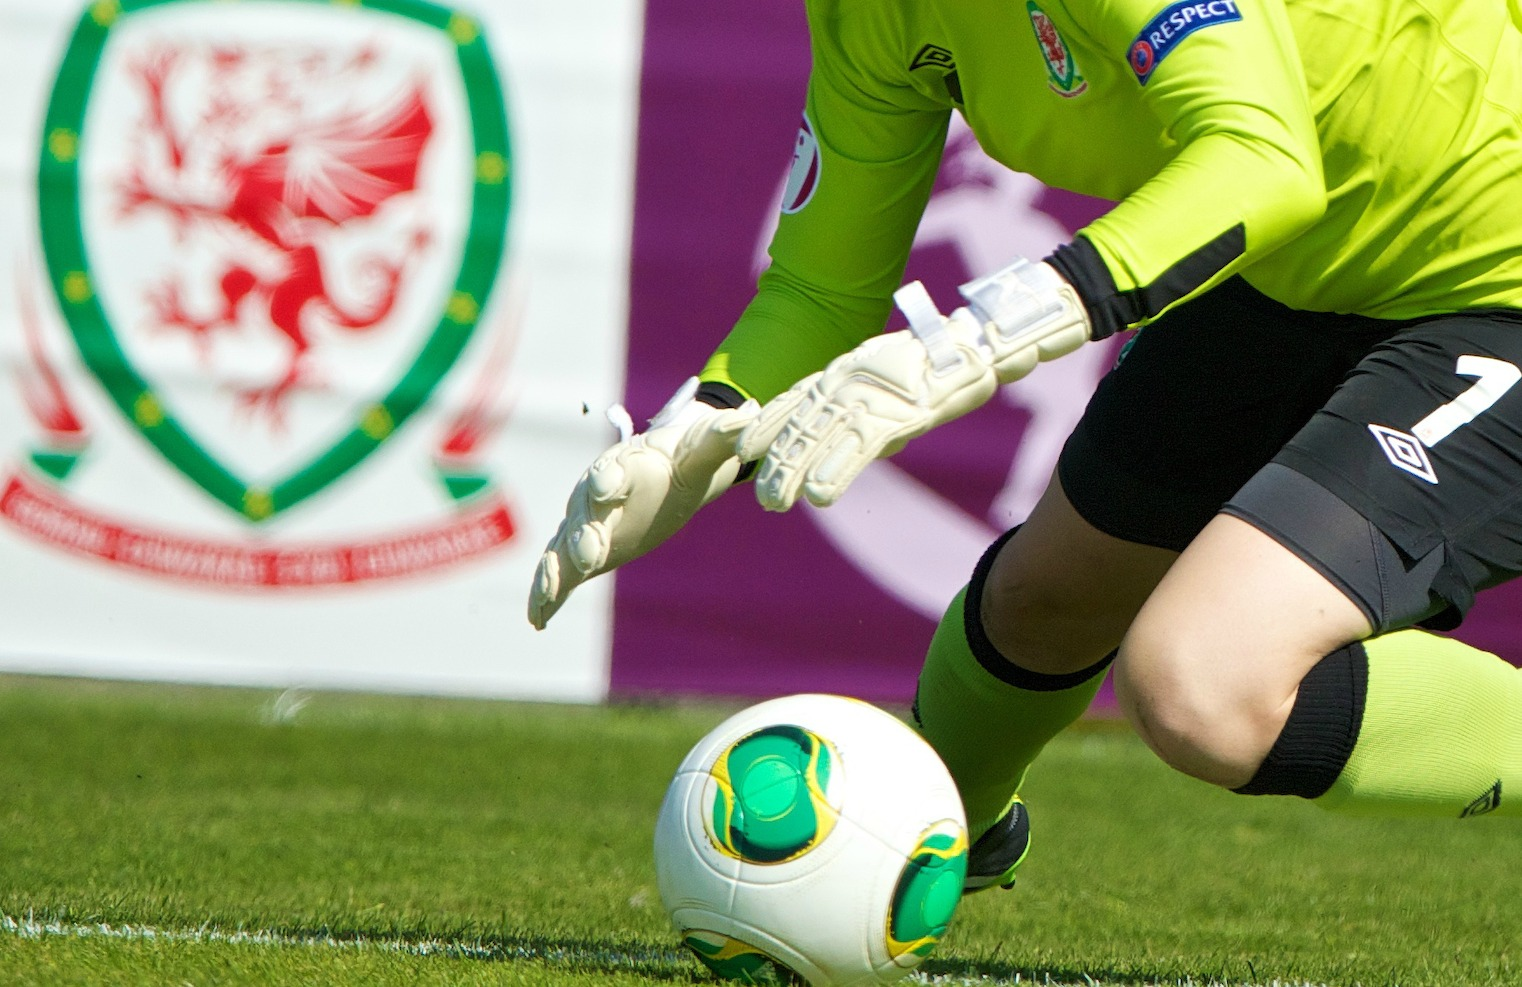 Specialist female goalkeeping session to be delivered by national coaches